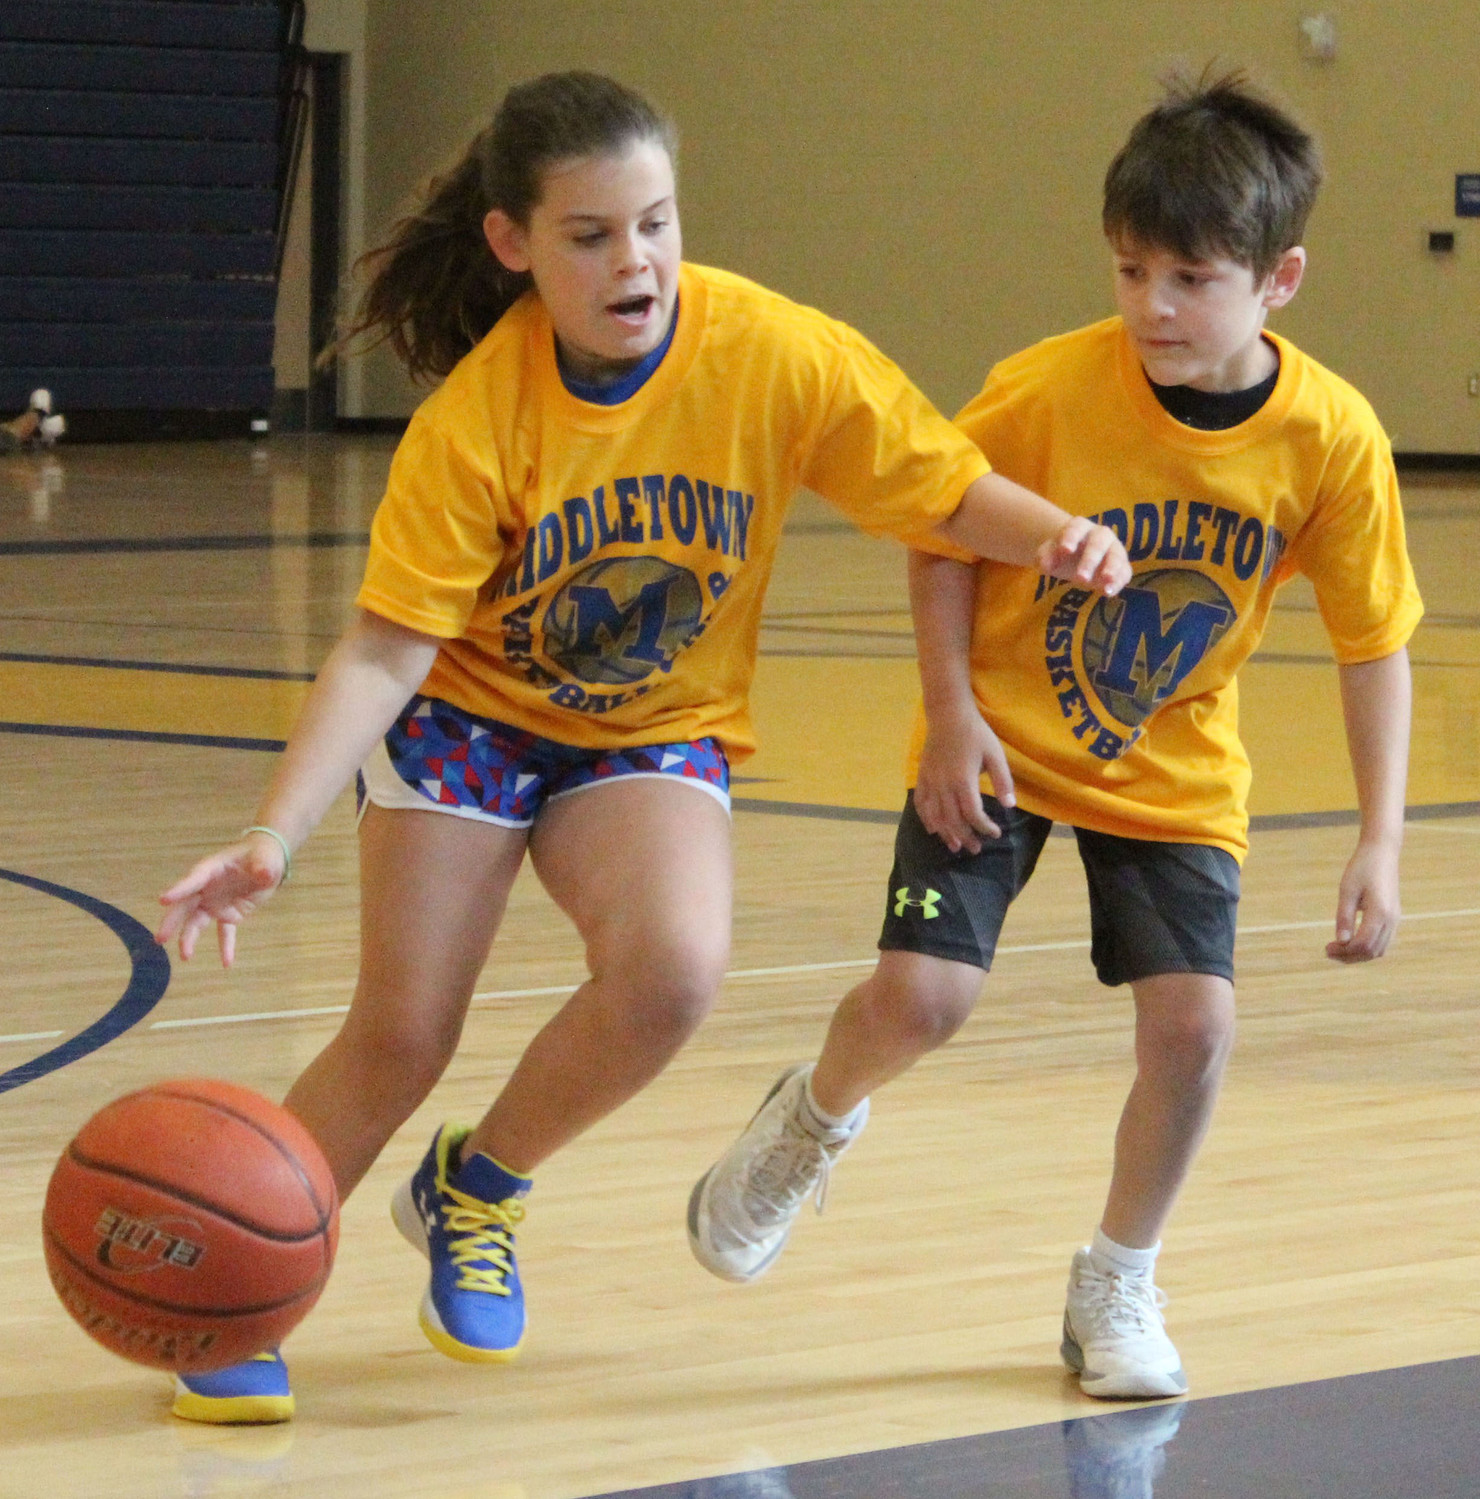 Hayden DeFilippo dribbles the ball during basketball camp on July 12.